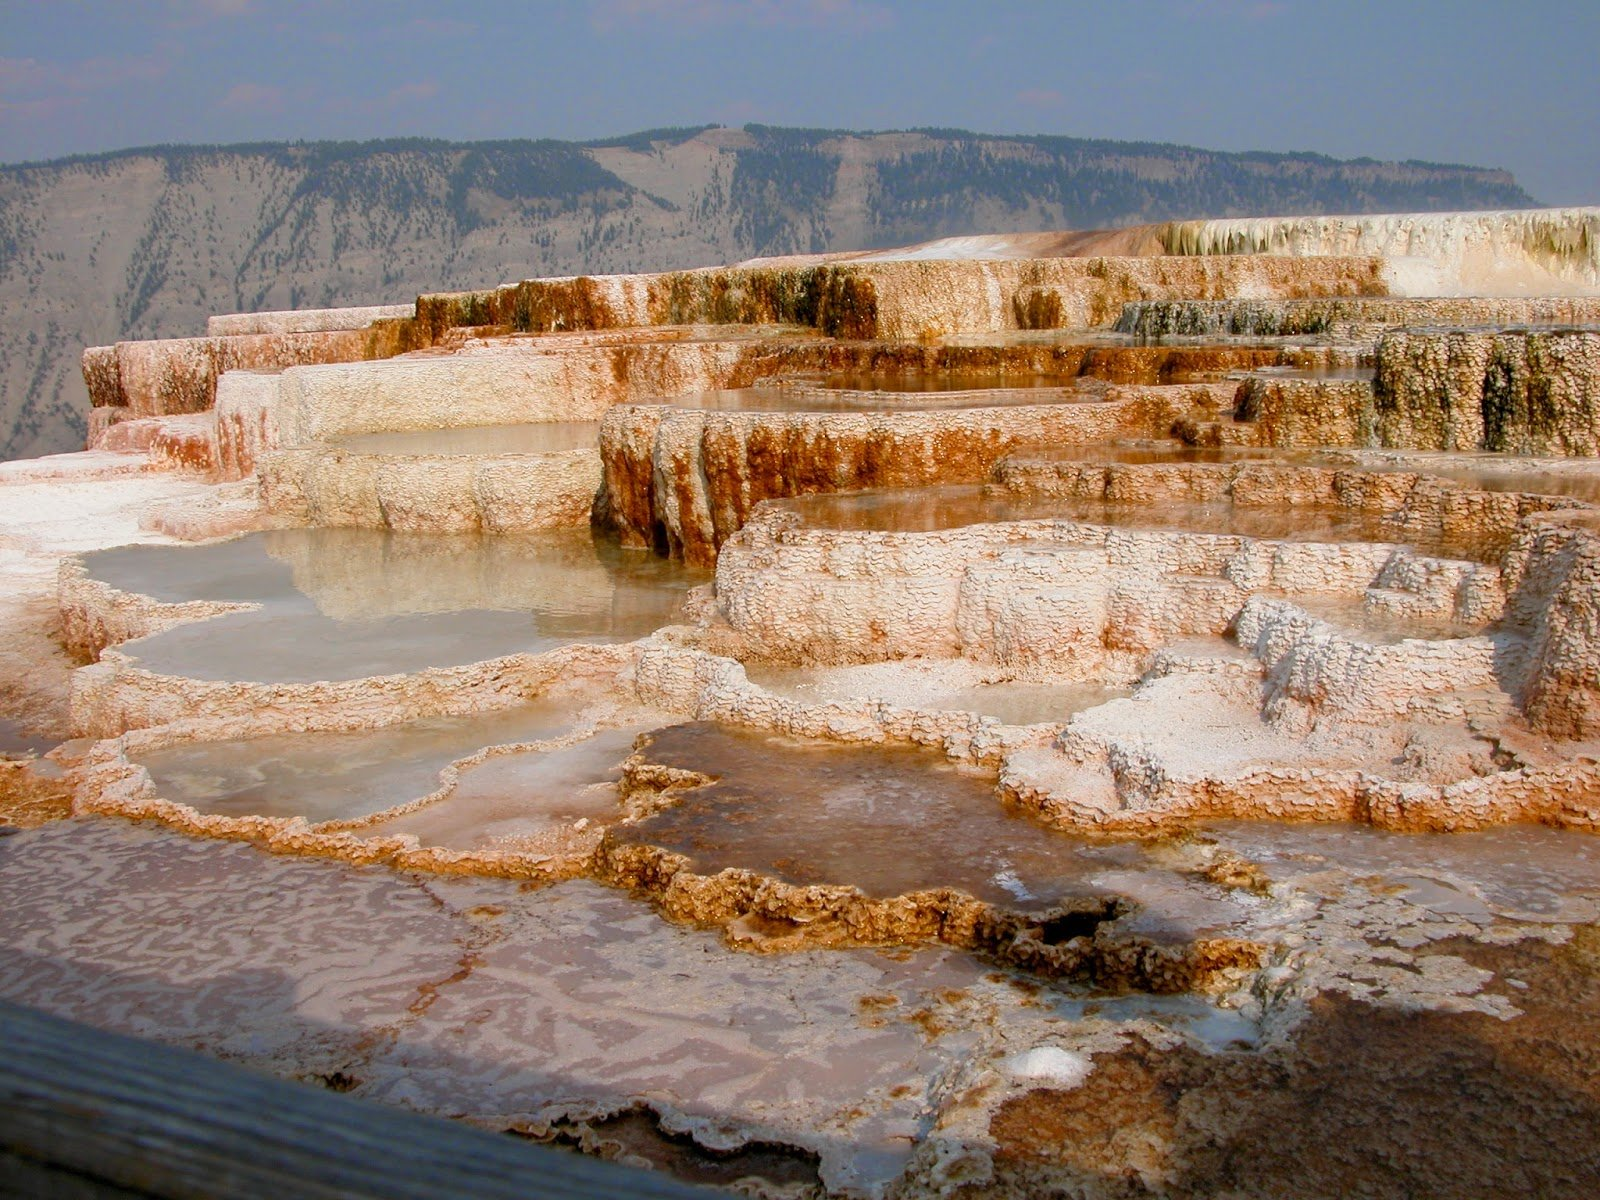 Mammoth Hot Springs at Yellowstone National Park                                                                             Image Source:http://bit.ly/1yHWqs2